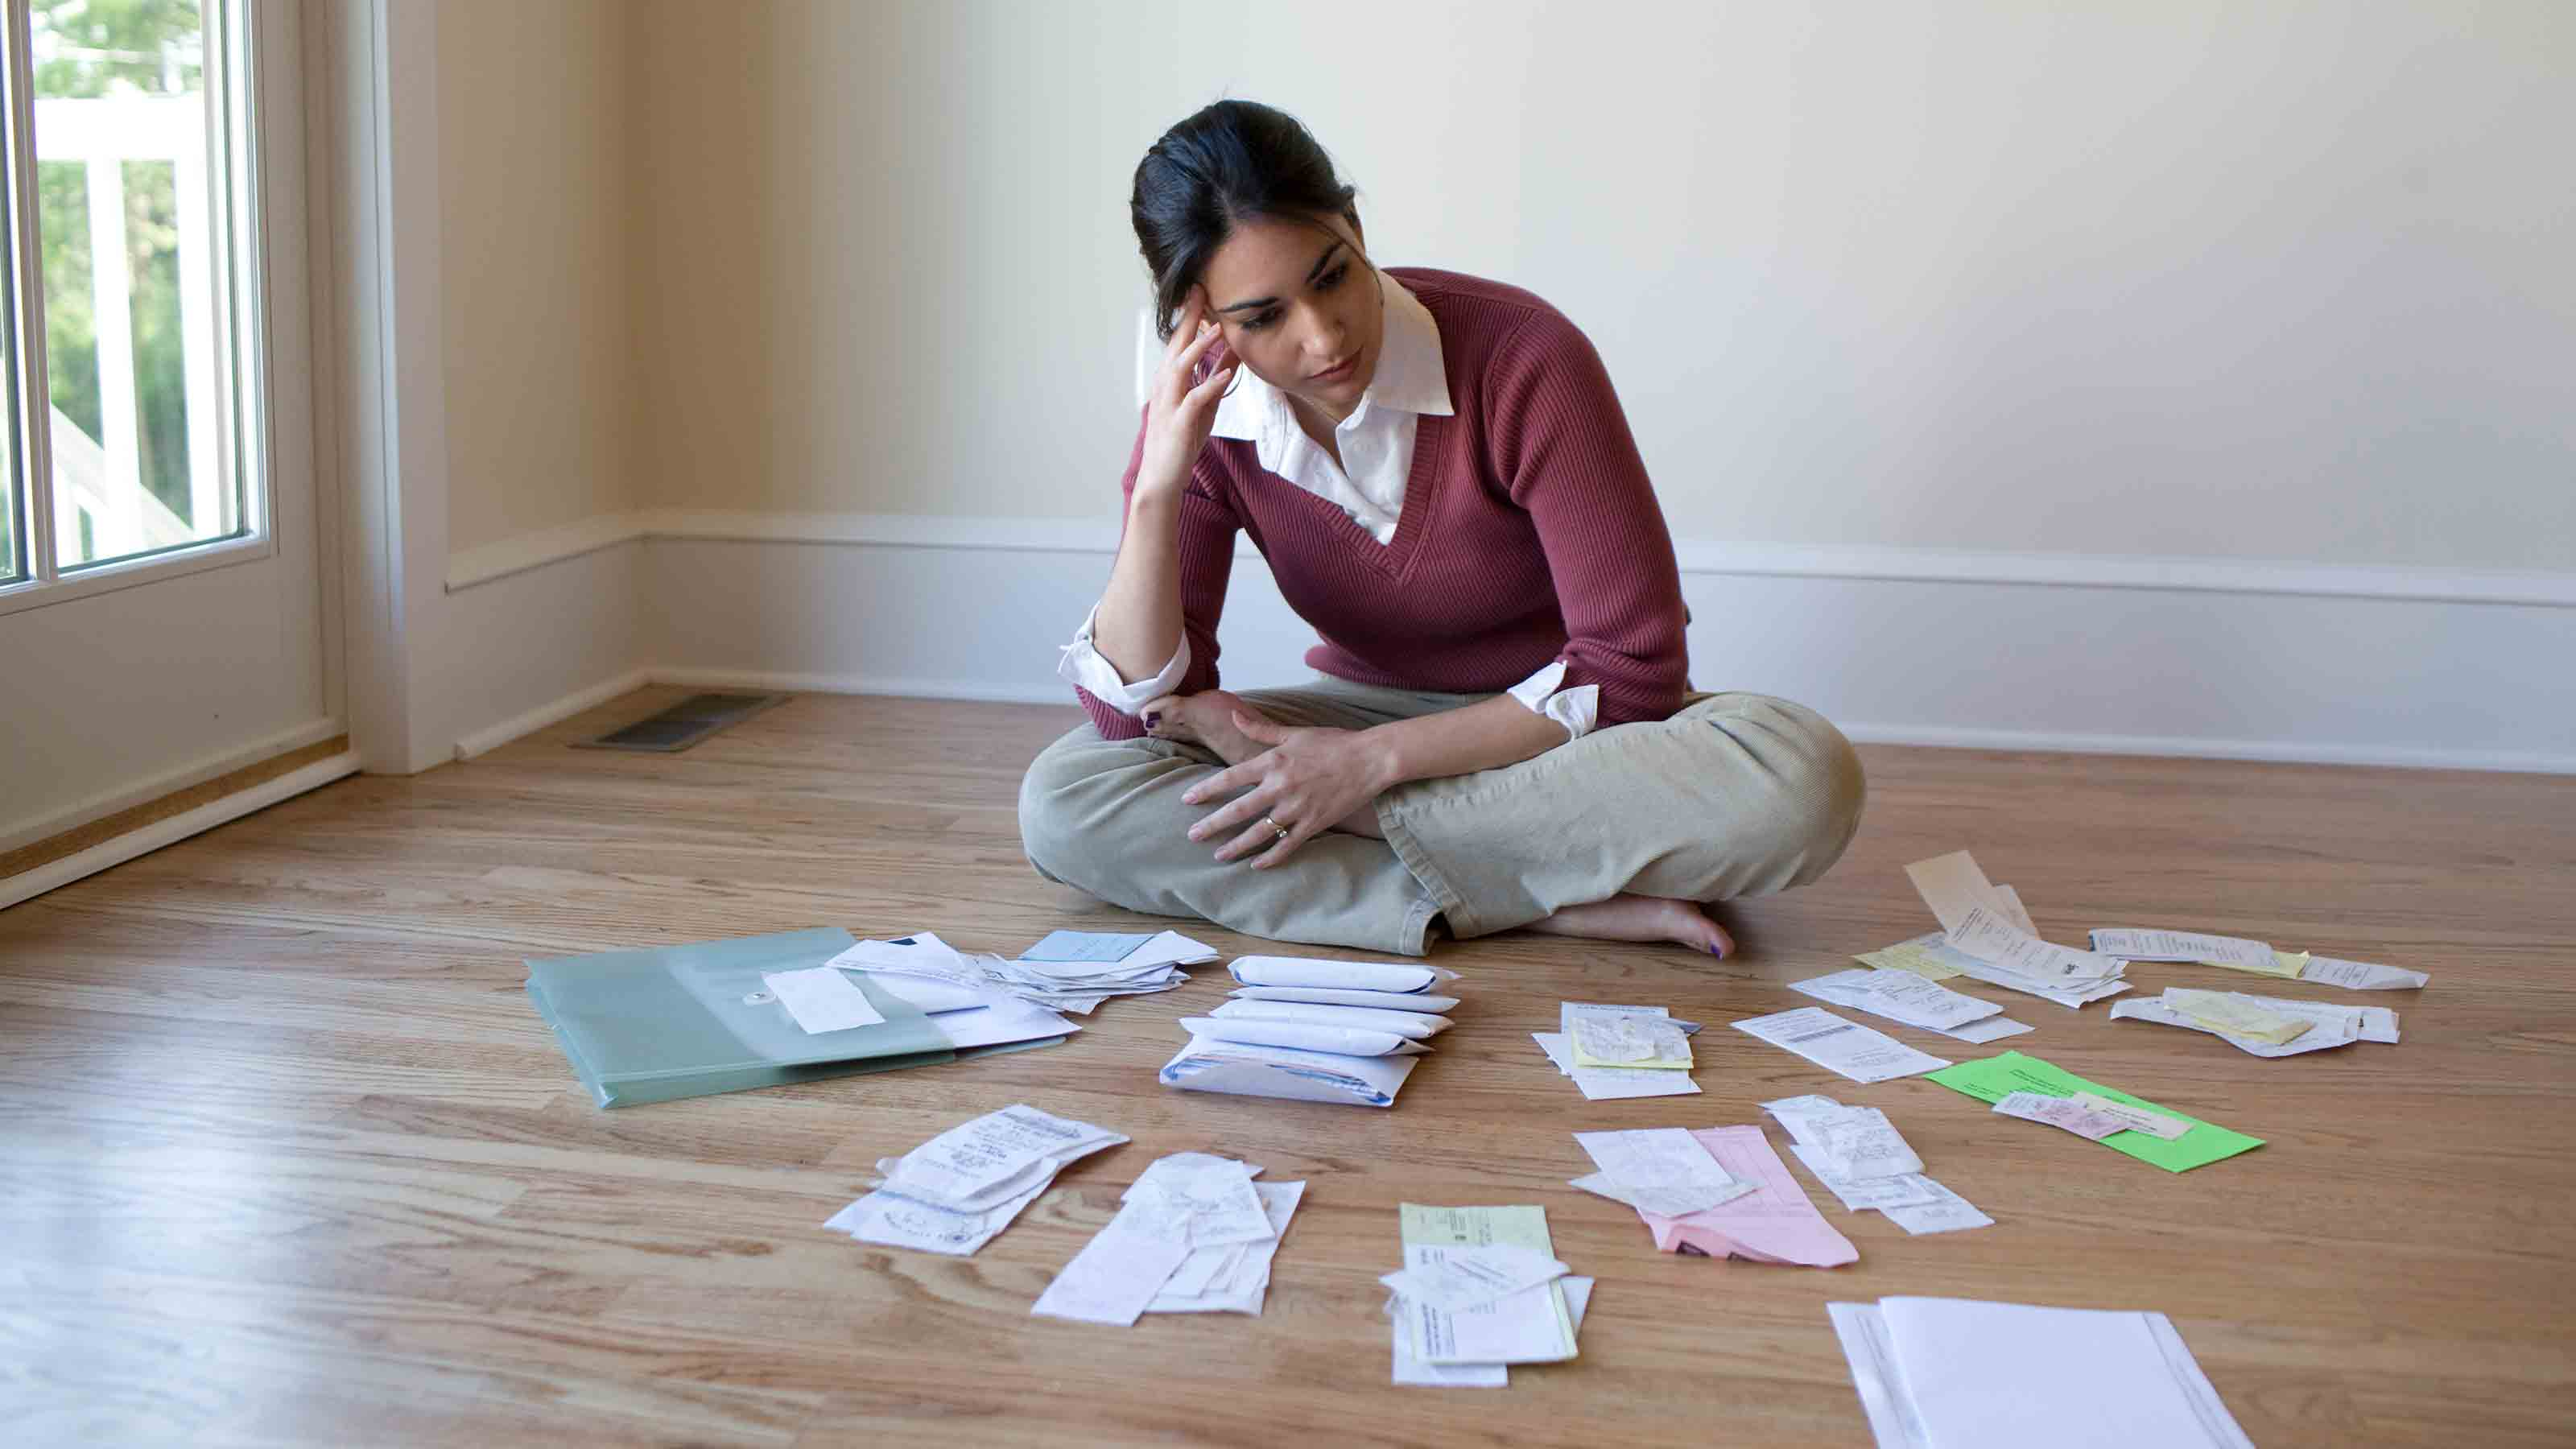 A young woman sitting on the floor looking at piles of receipts.